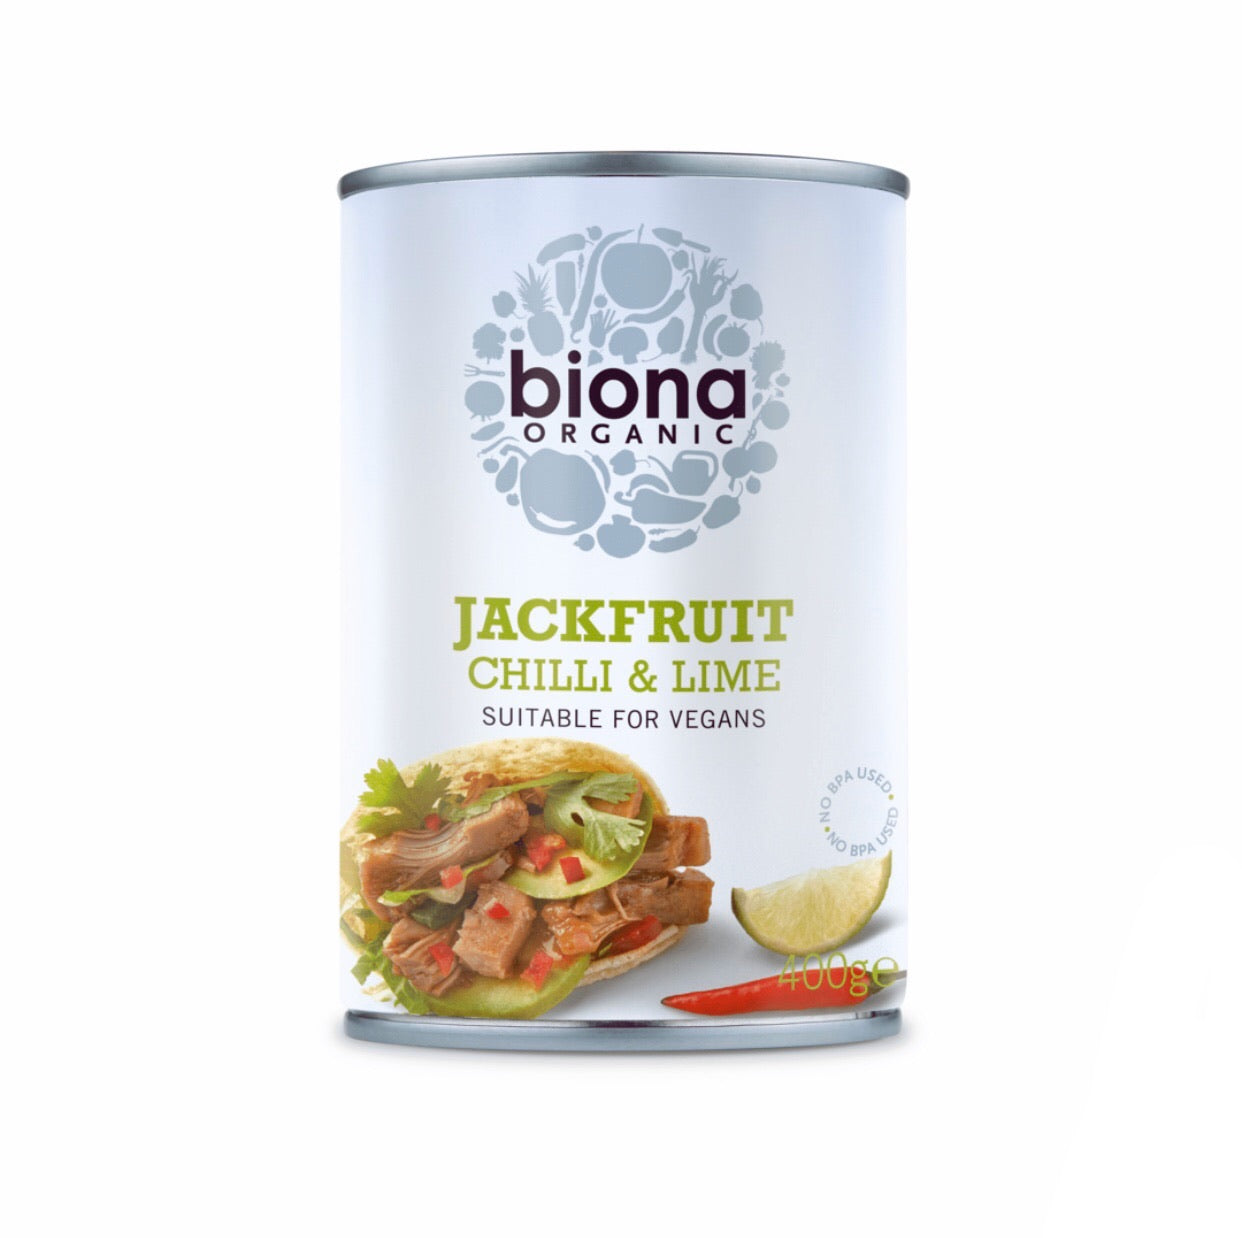 Organic Chilli & Lime Jackfruit • 400g